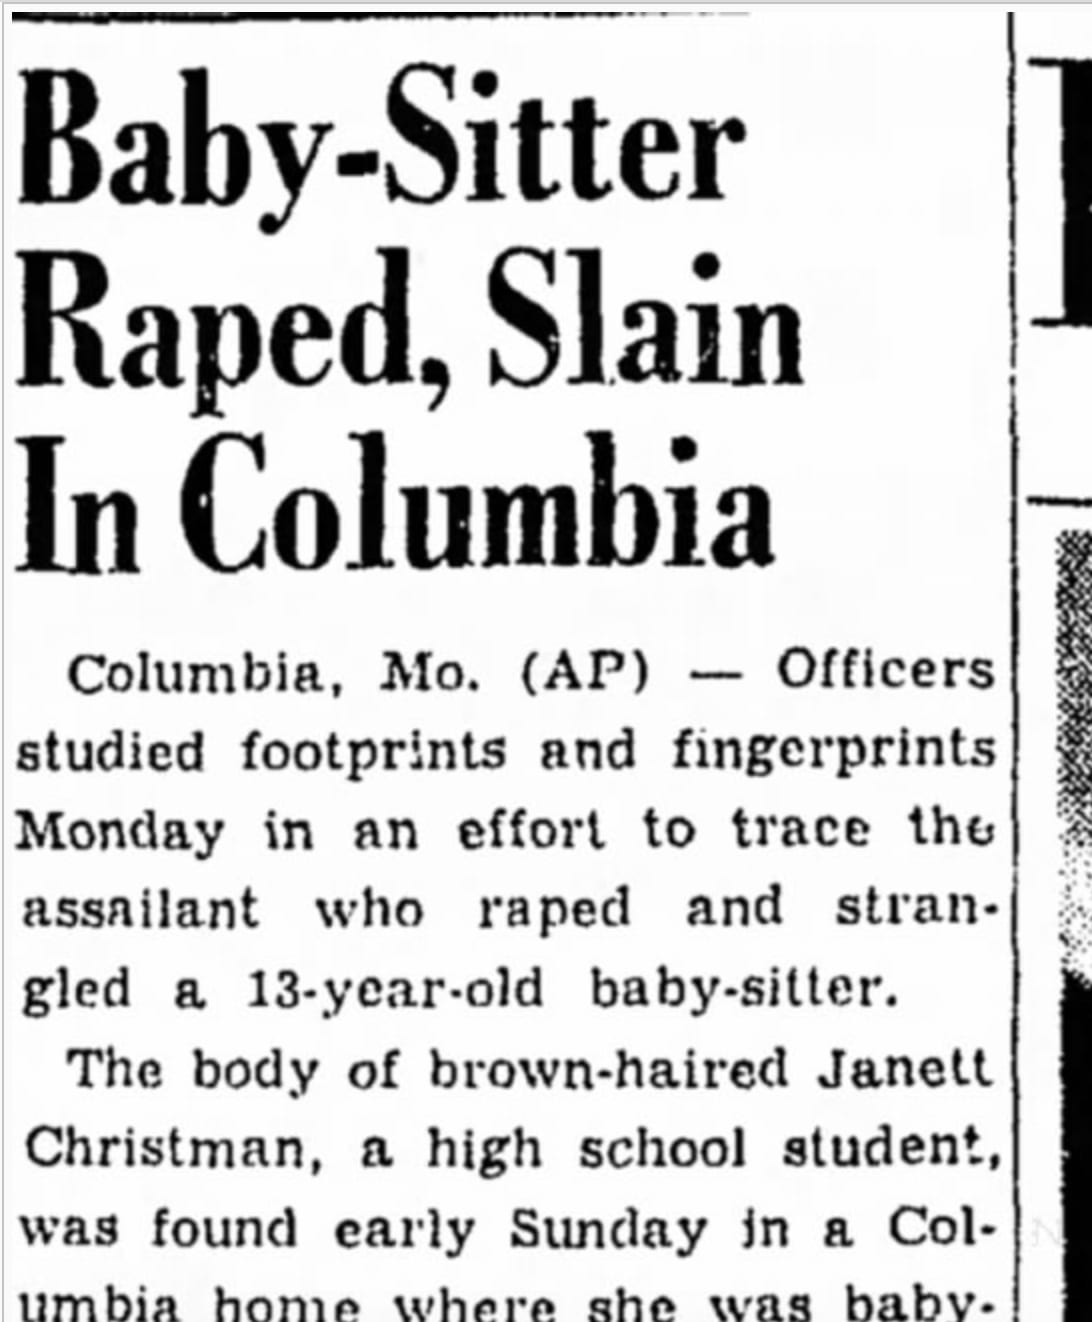 A newspaper clipping of the 1950 murder